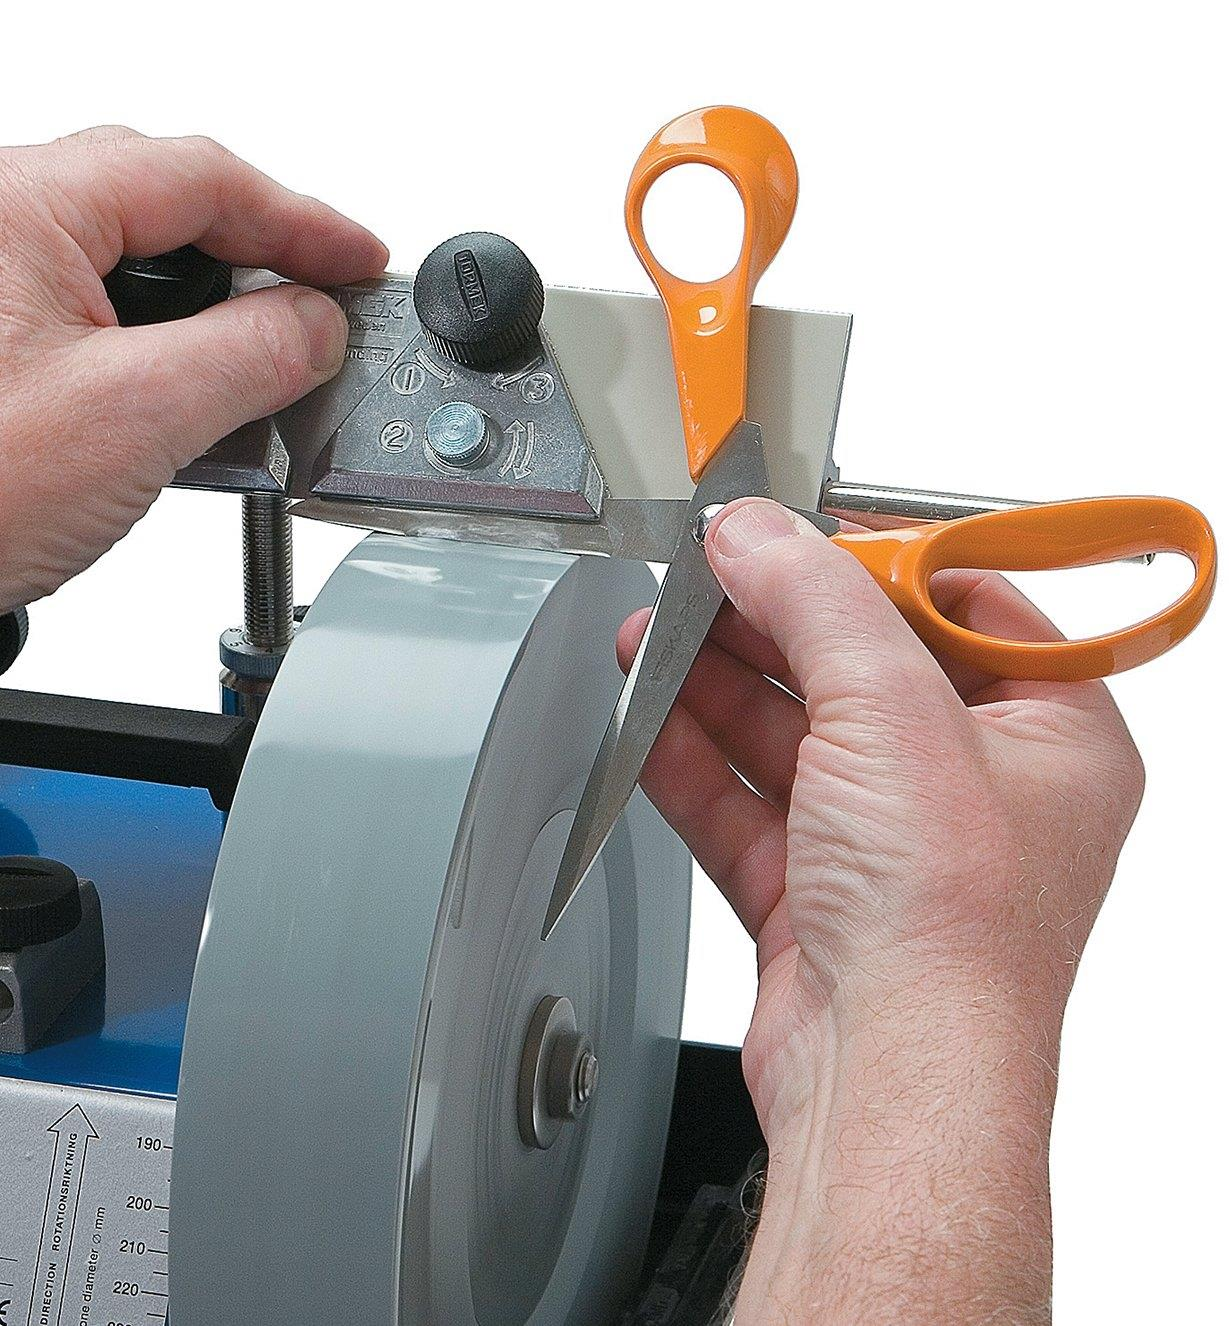 Sharpening a pair of scissors using the Tormek Scissors Jig